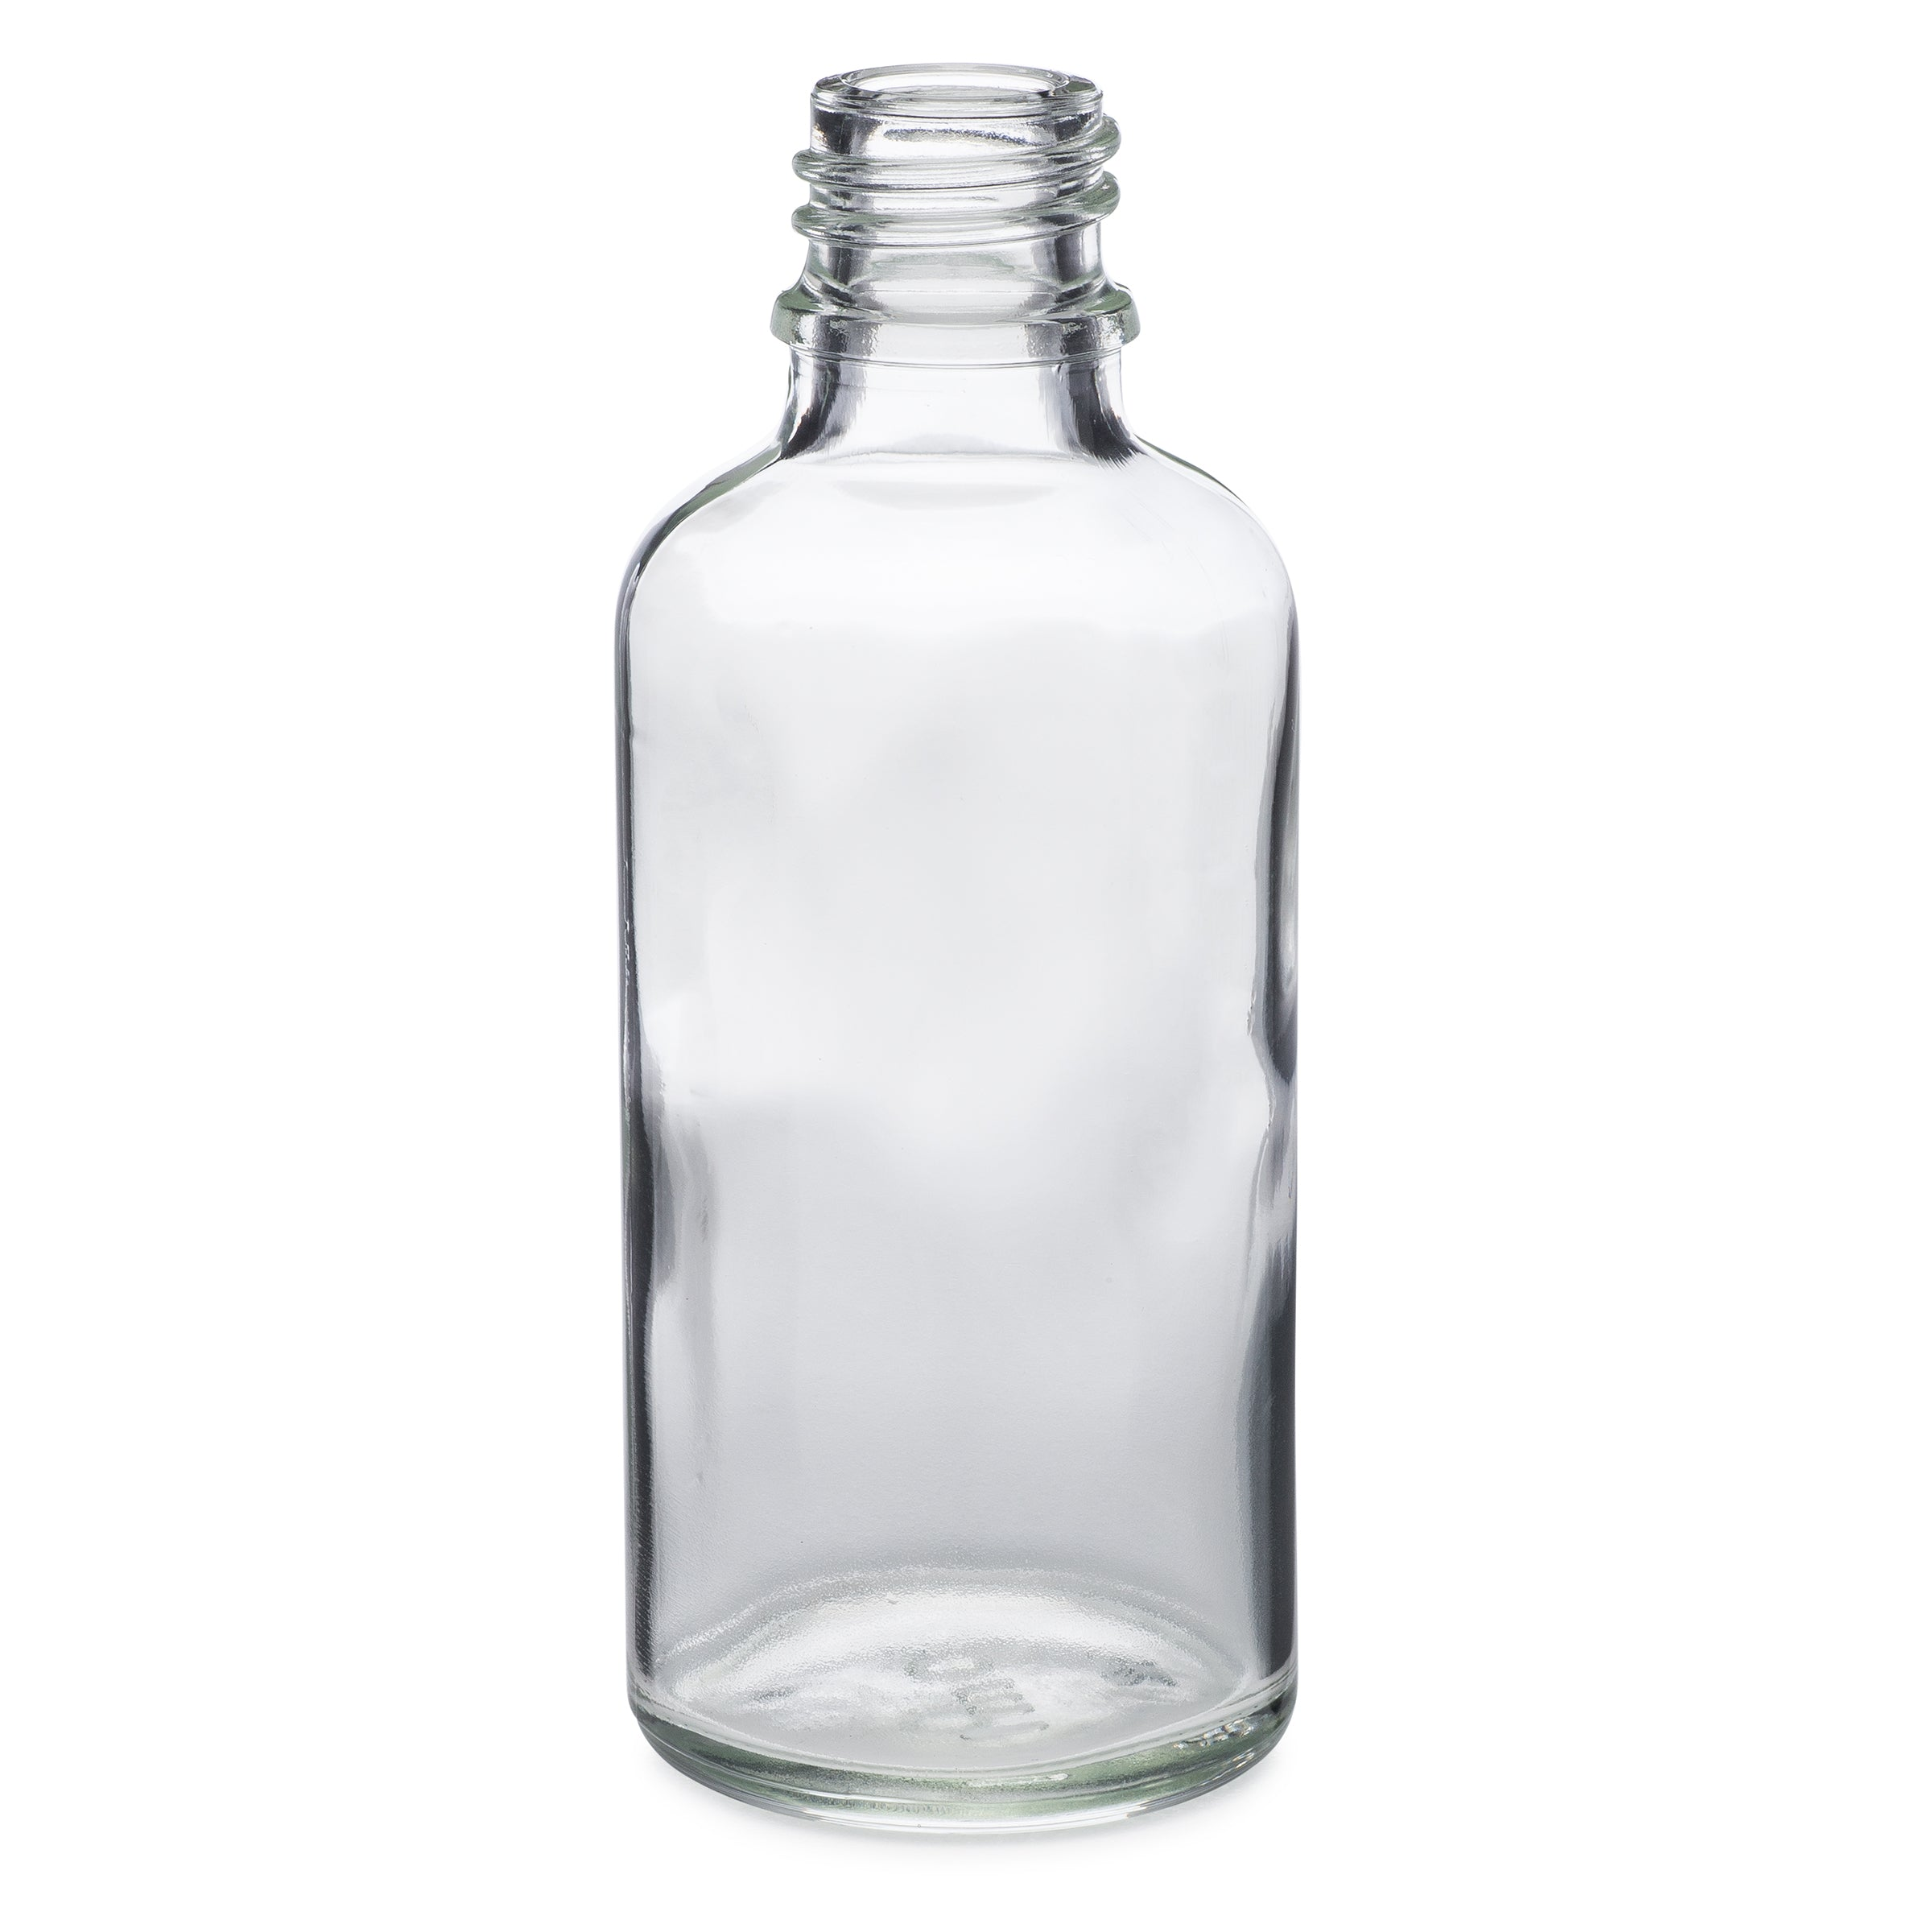 50ml Flint Dropper Bottle